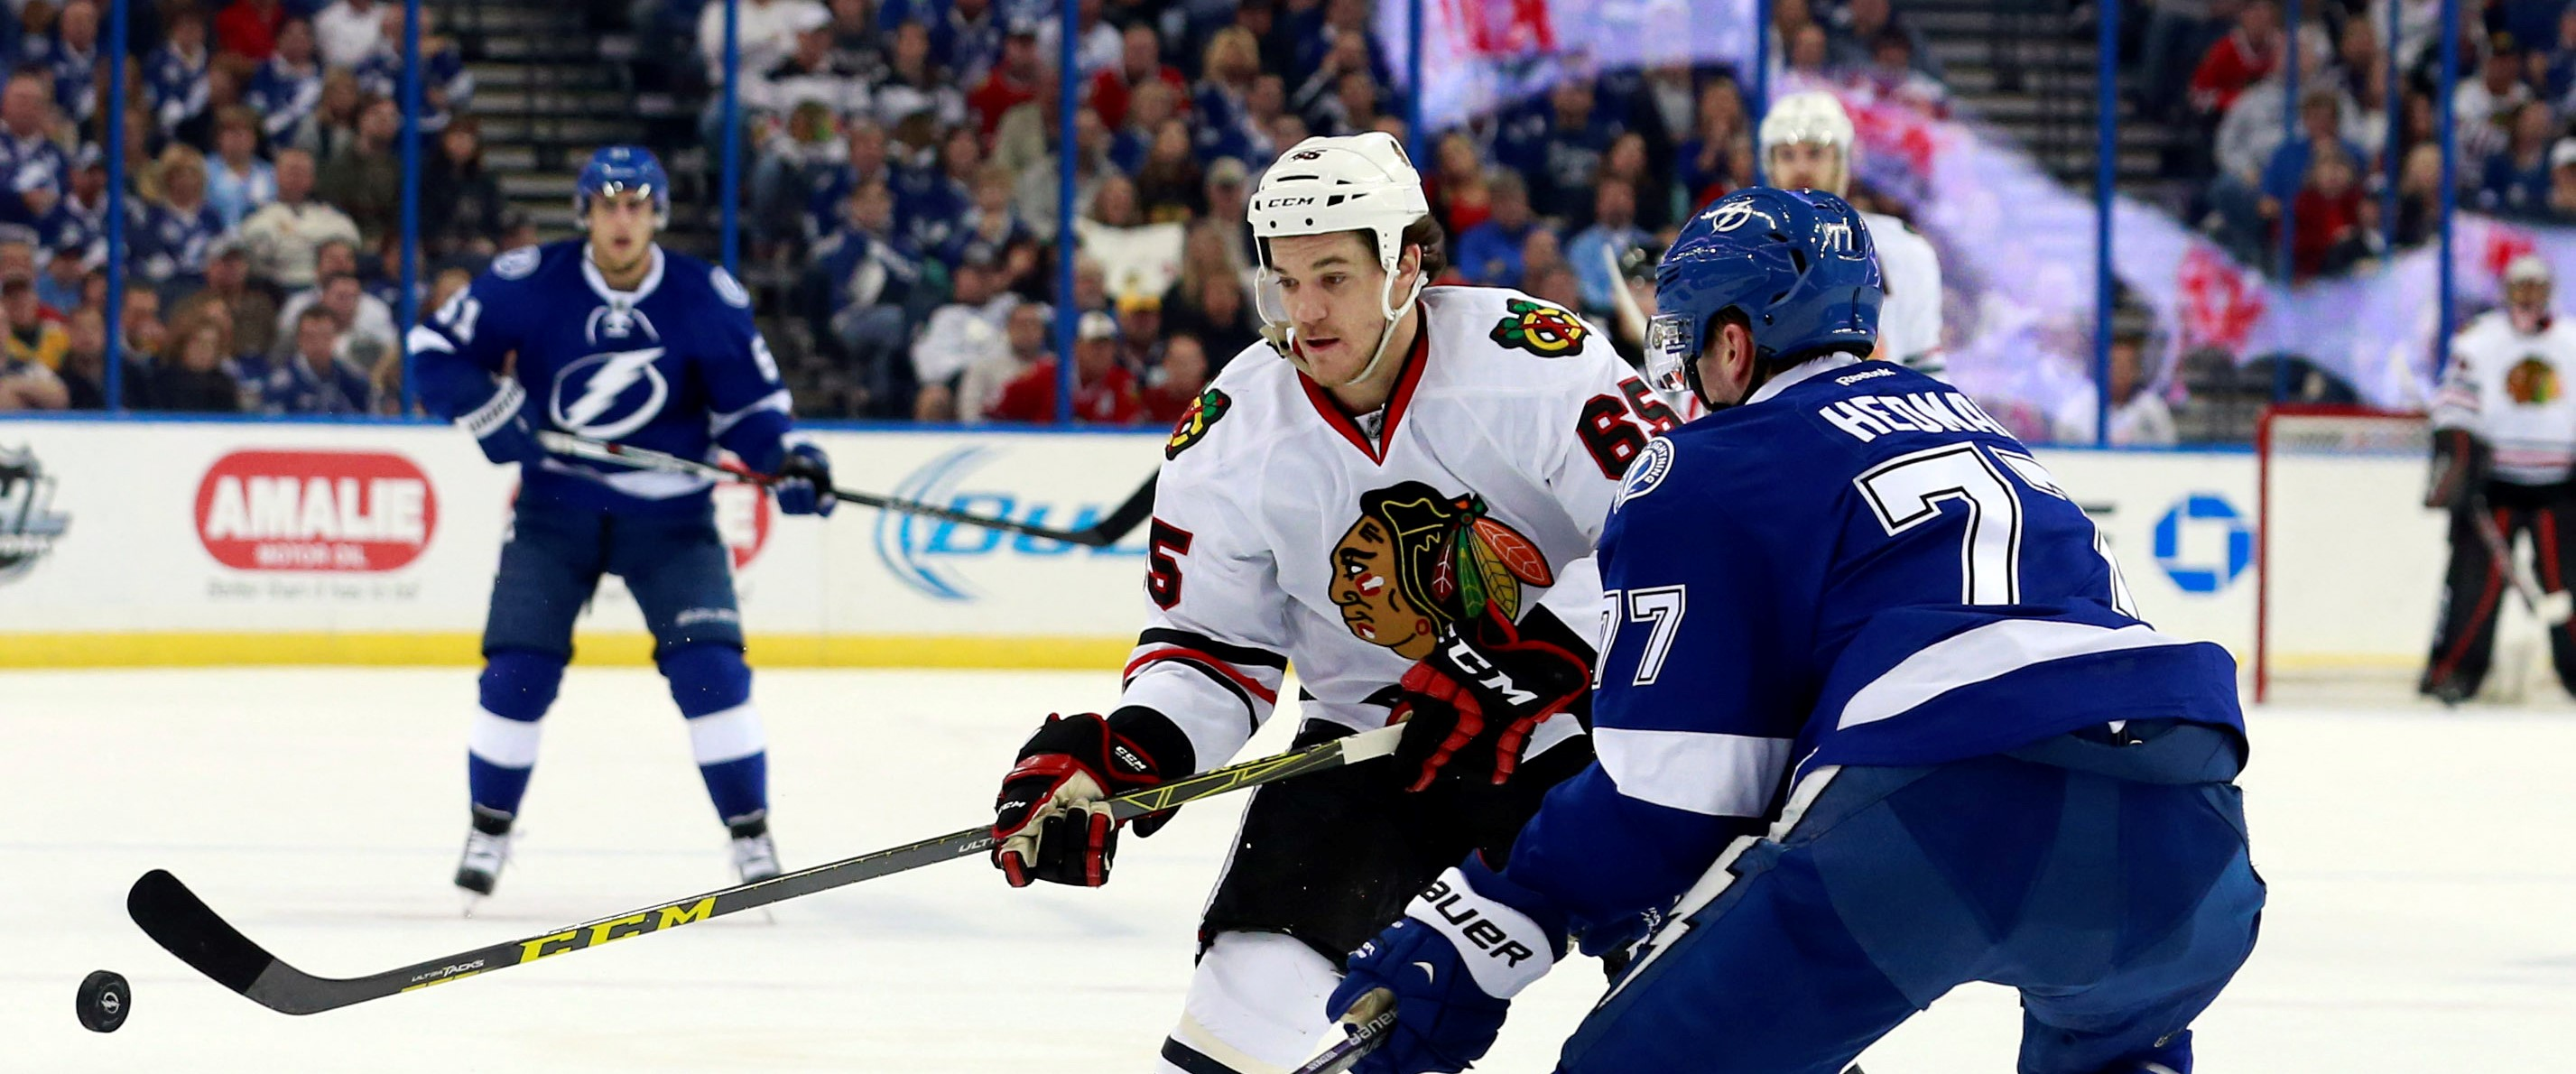 Jan 21, 2016; Tampa, FL, USA; Chicago Blackhawks center Andrew Shaw (65) passes the puck as Tampa Bay Lightning defenseman Victor Hedman (77) defends during the first period at Amalie Arena. Mandatory Credit: Kim Klement-USA TODAY Sports